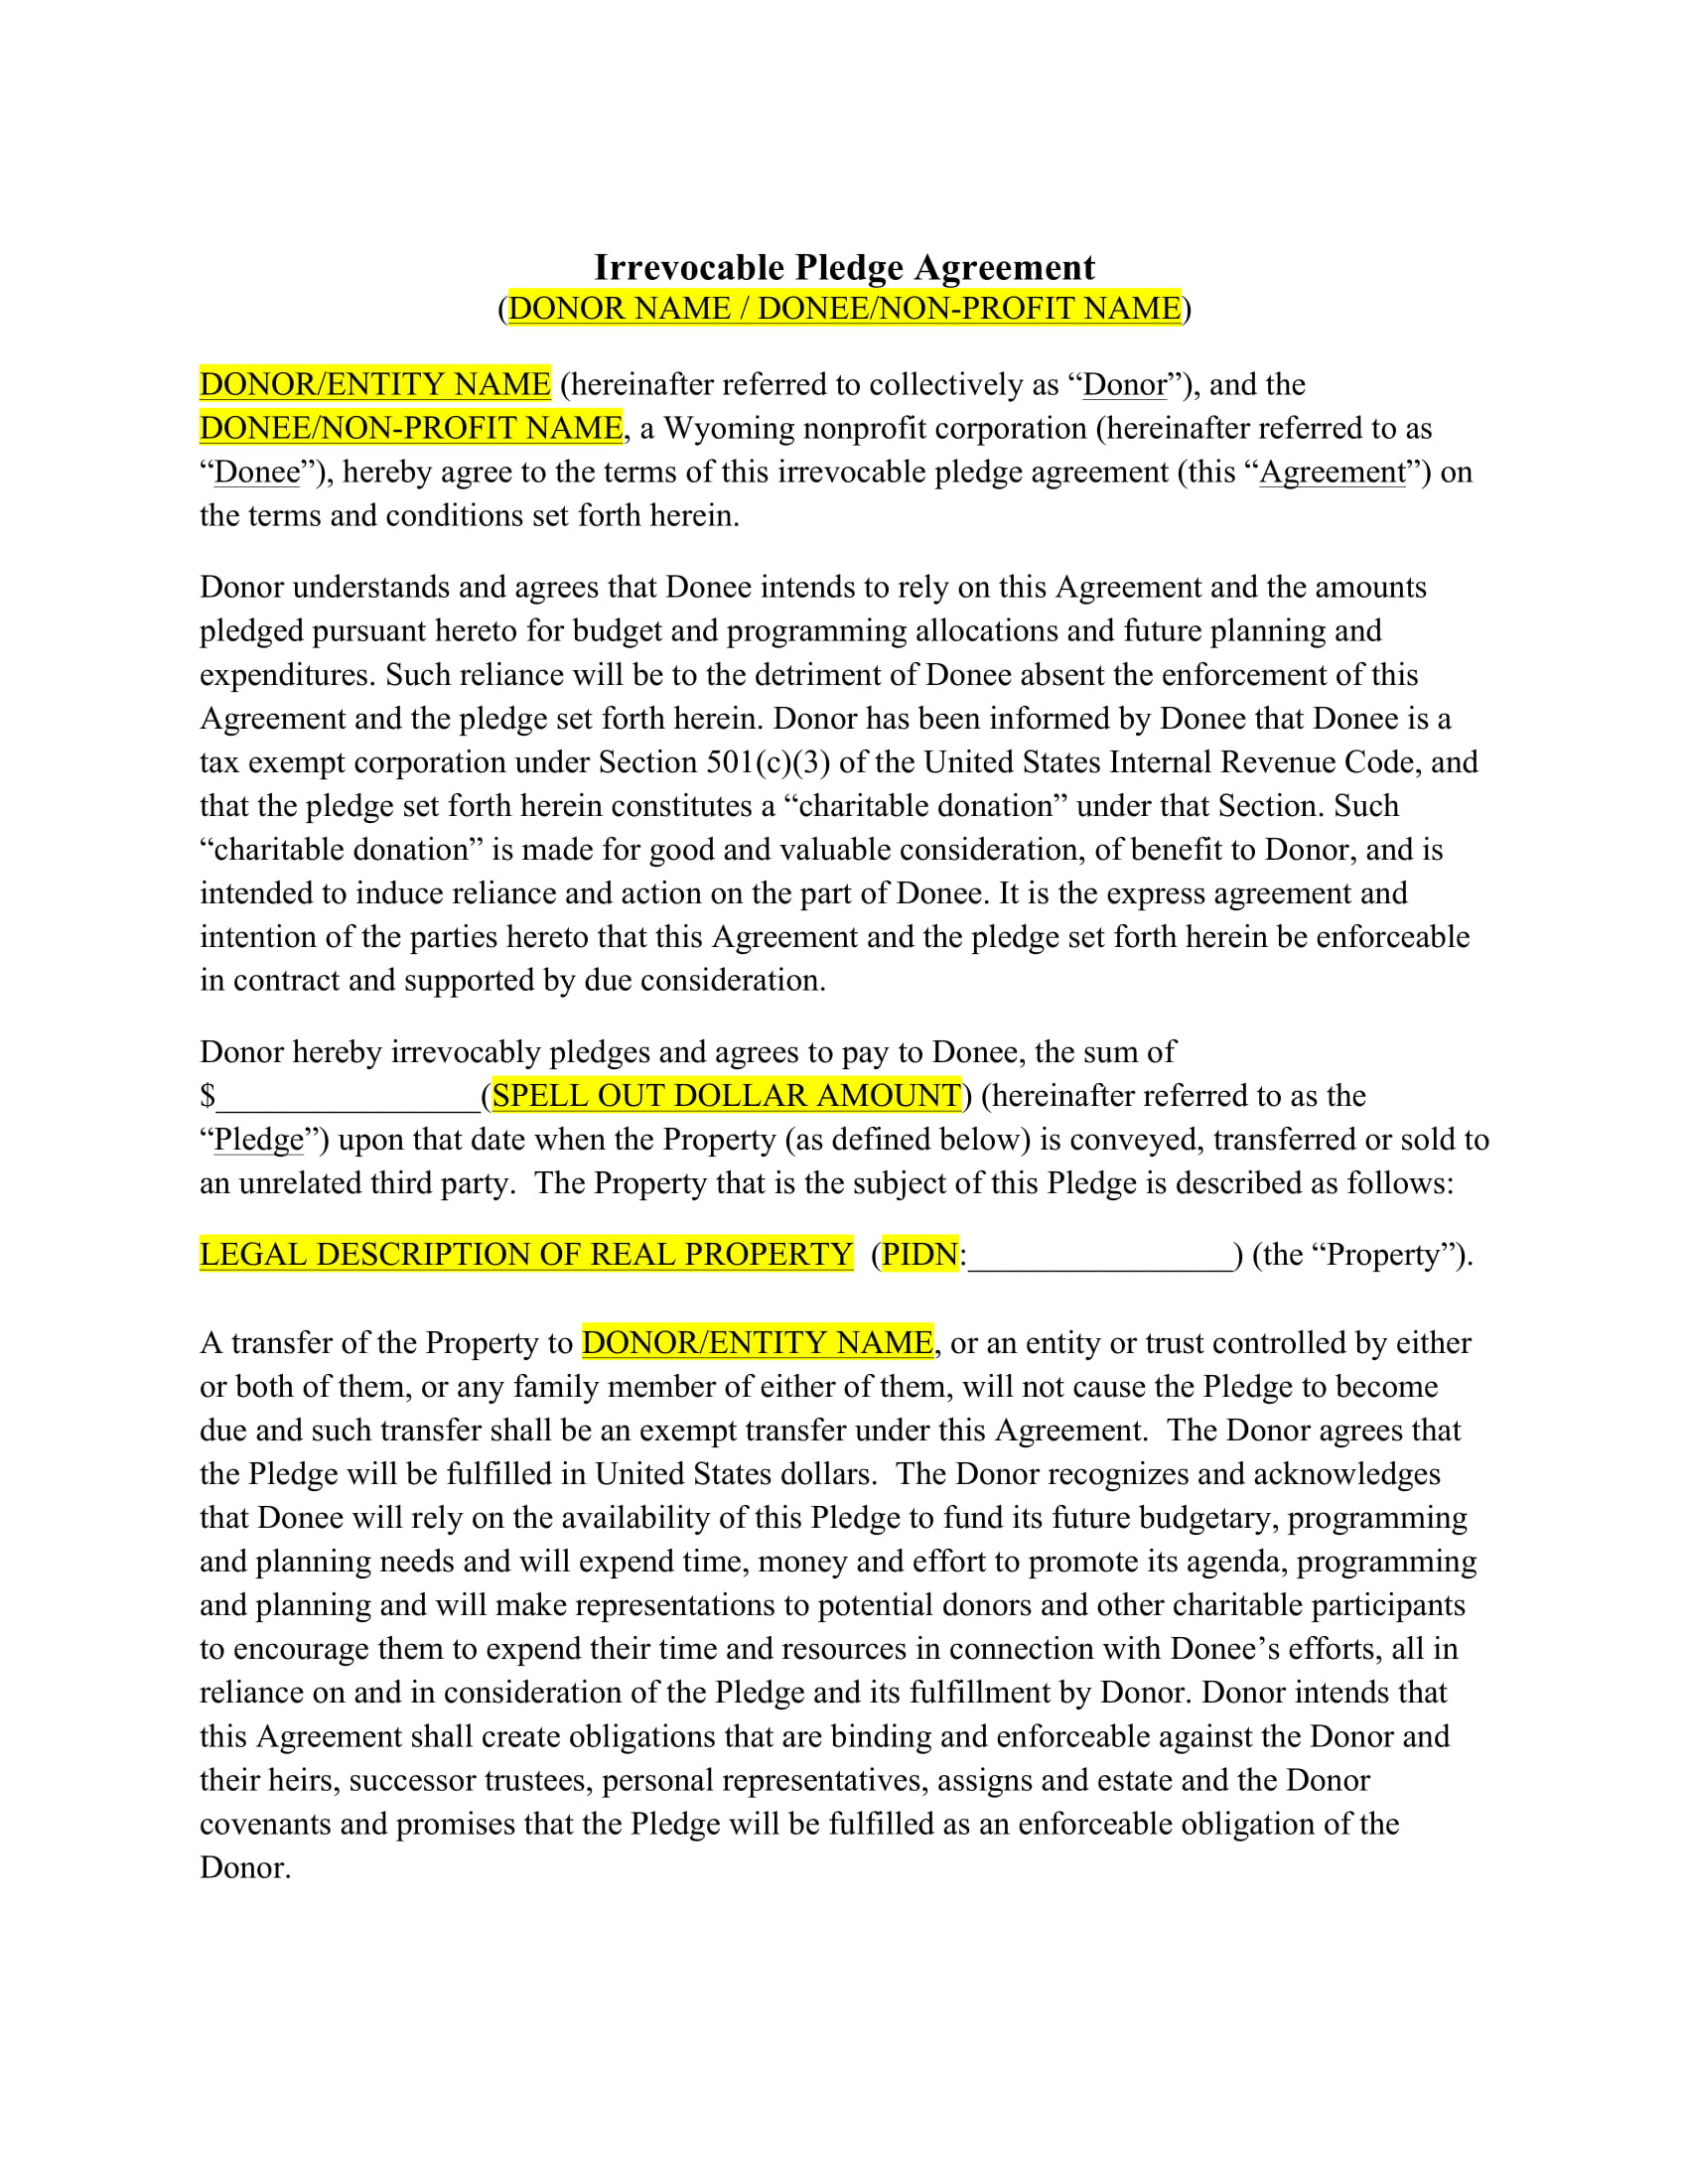 irrevocable pledge agreement contract form 1